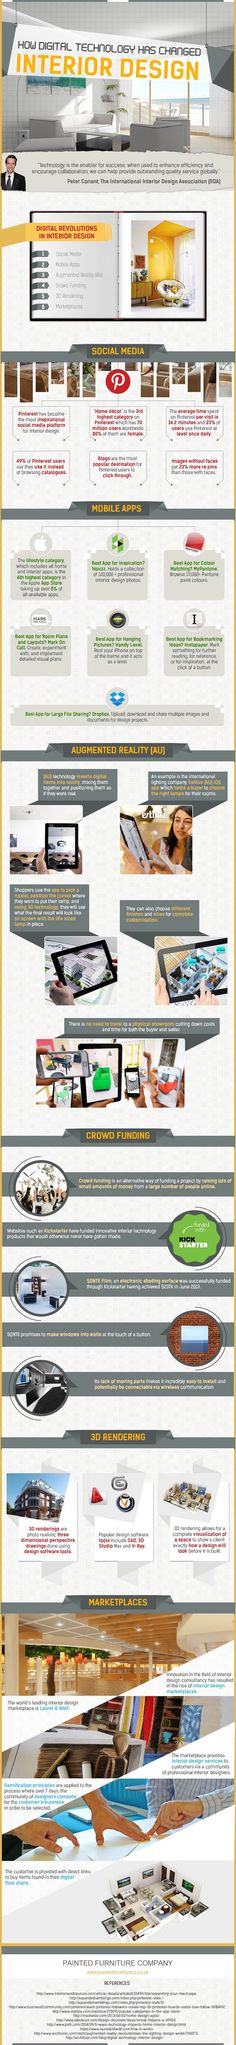 Painted Furniture Company has created an infographic detailing the many ways technology has transformed the realm of interior design, from augmented reality apps to 3D rendering tools.